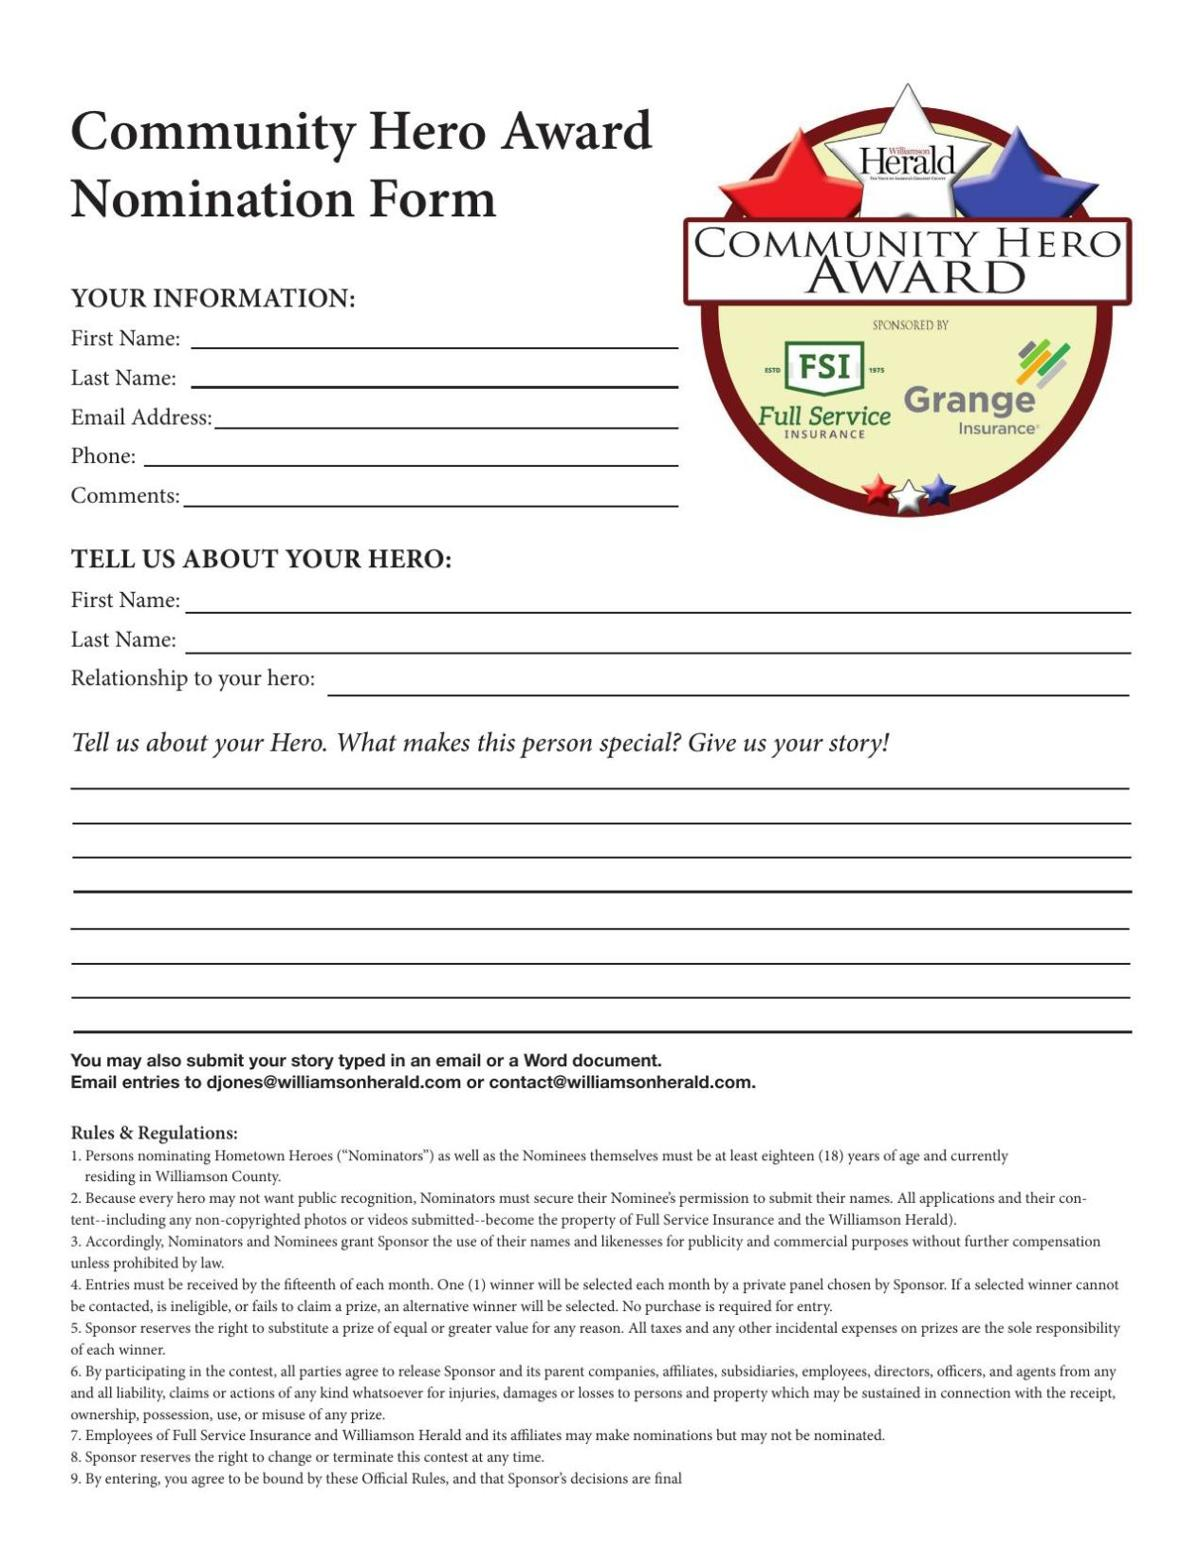 Full Service Community Awards Nomination Form